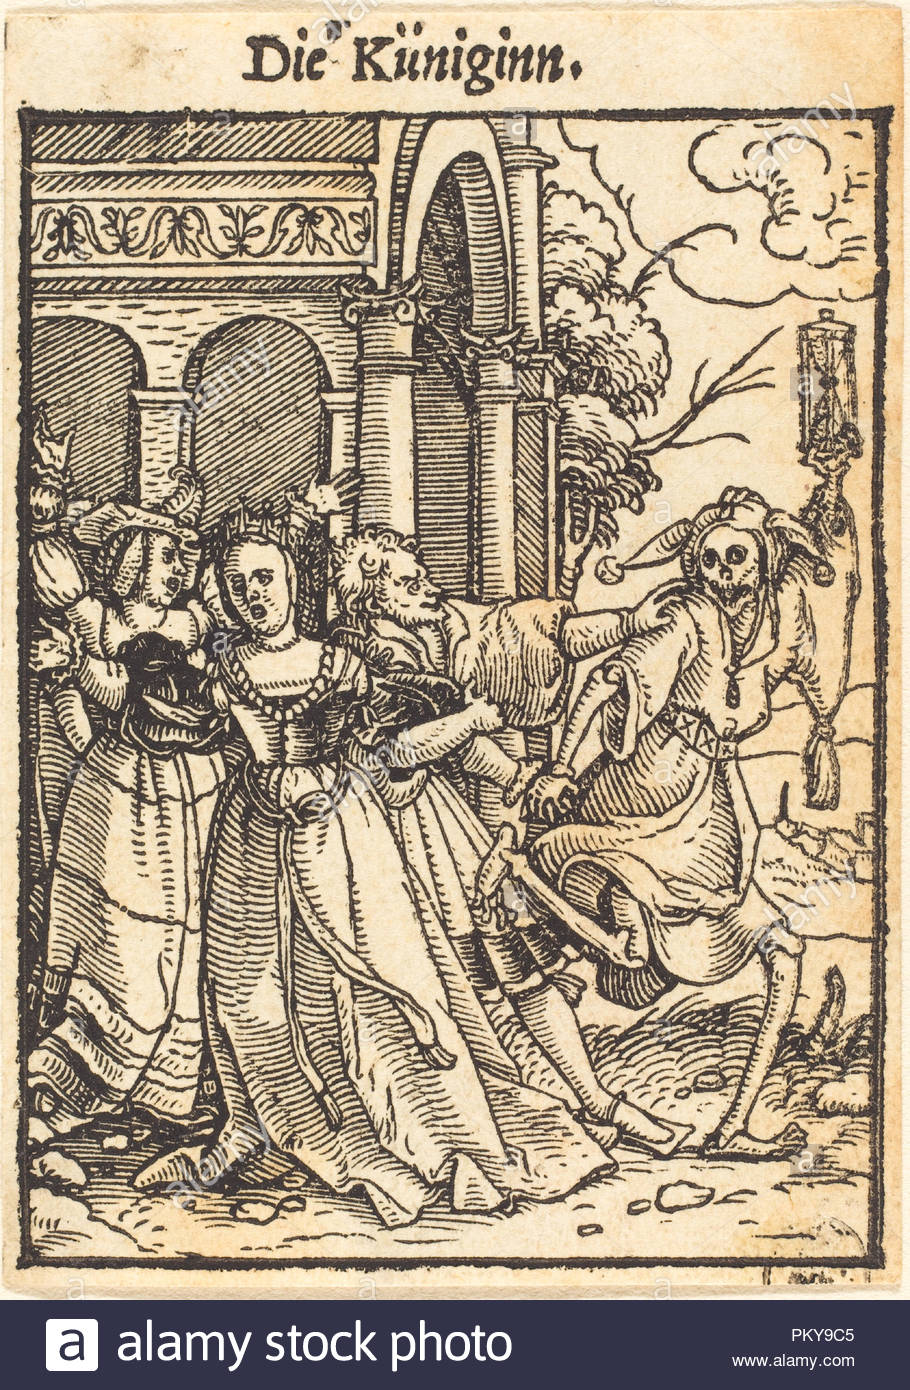 Queen. Medium: woodcut. Museum: National Gallery of Art, Washington DC. Author: Hans Holbein the Younger. - Stock Image